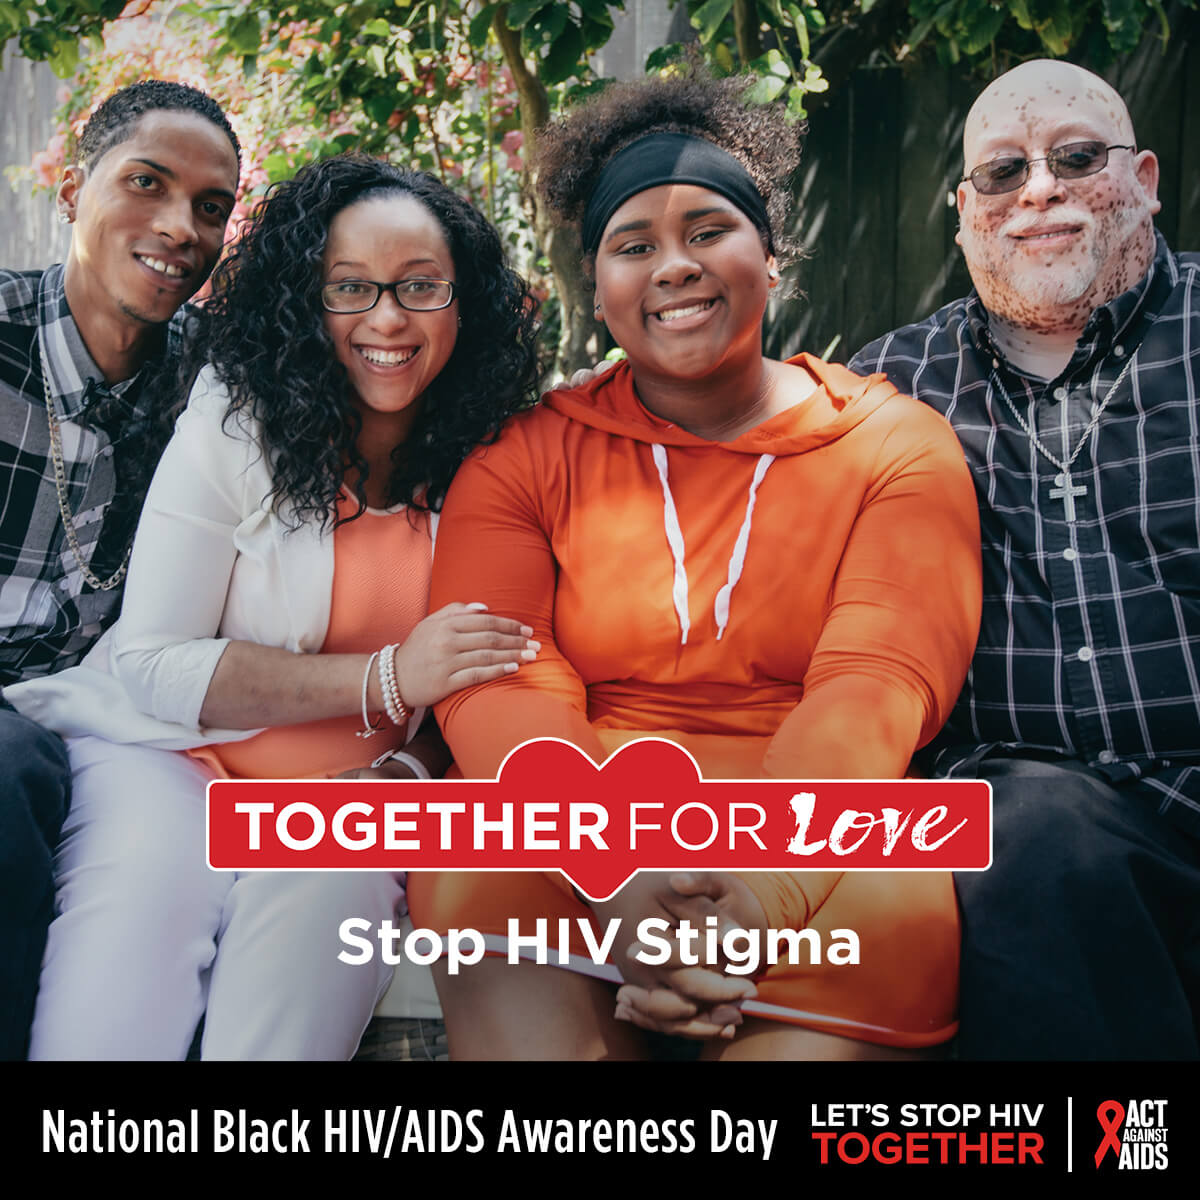 Together for Love. Stop HIV Stigma. National Black HIV/AIDS Awareness Day. Let's Stop HIV Together.